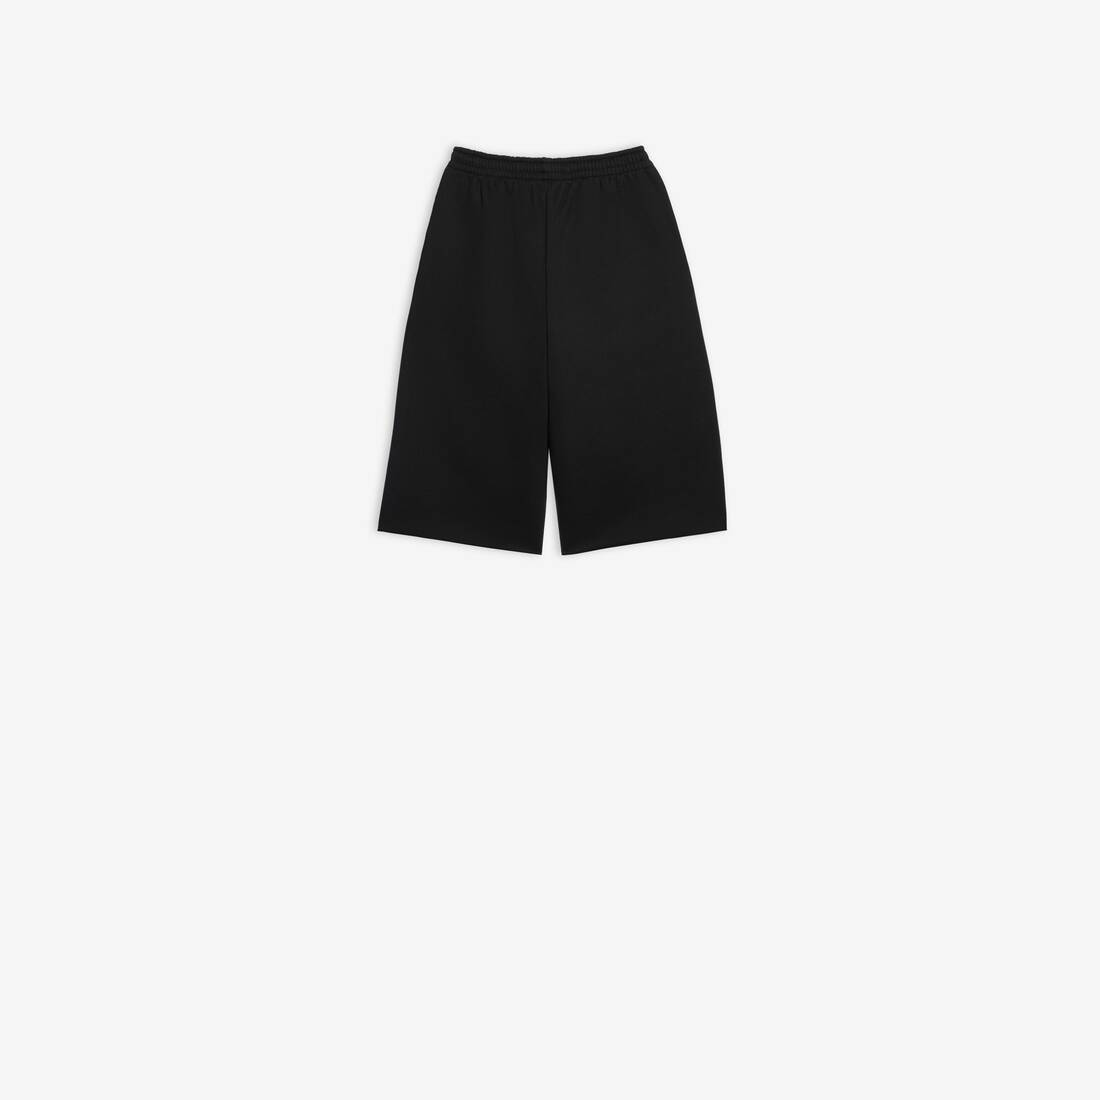 Display zoomed version of oversize shorts 2